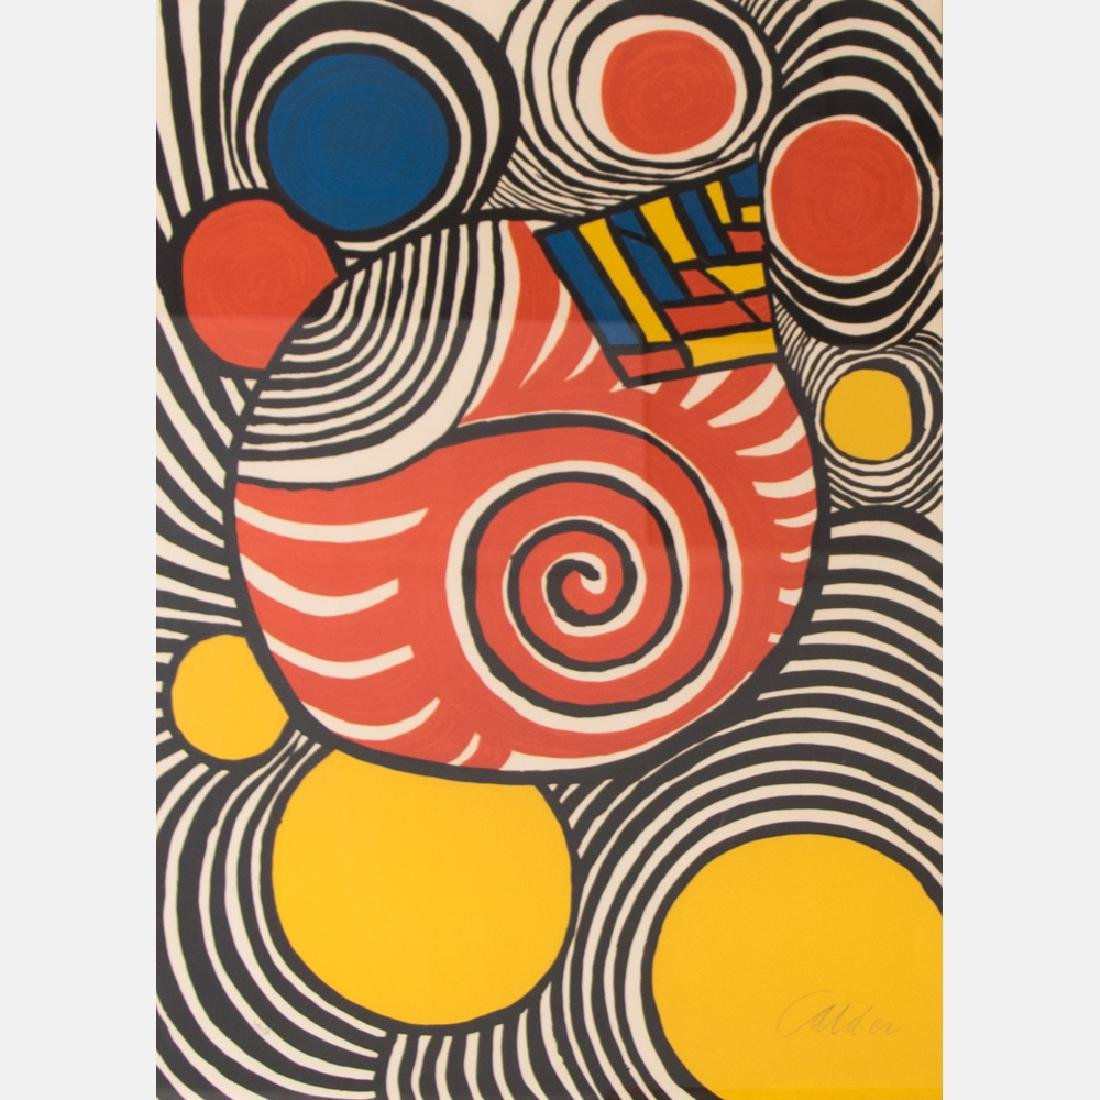 Alexander Calder (1898-1976) Clown, Lithograph,